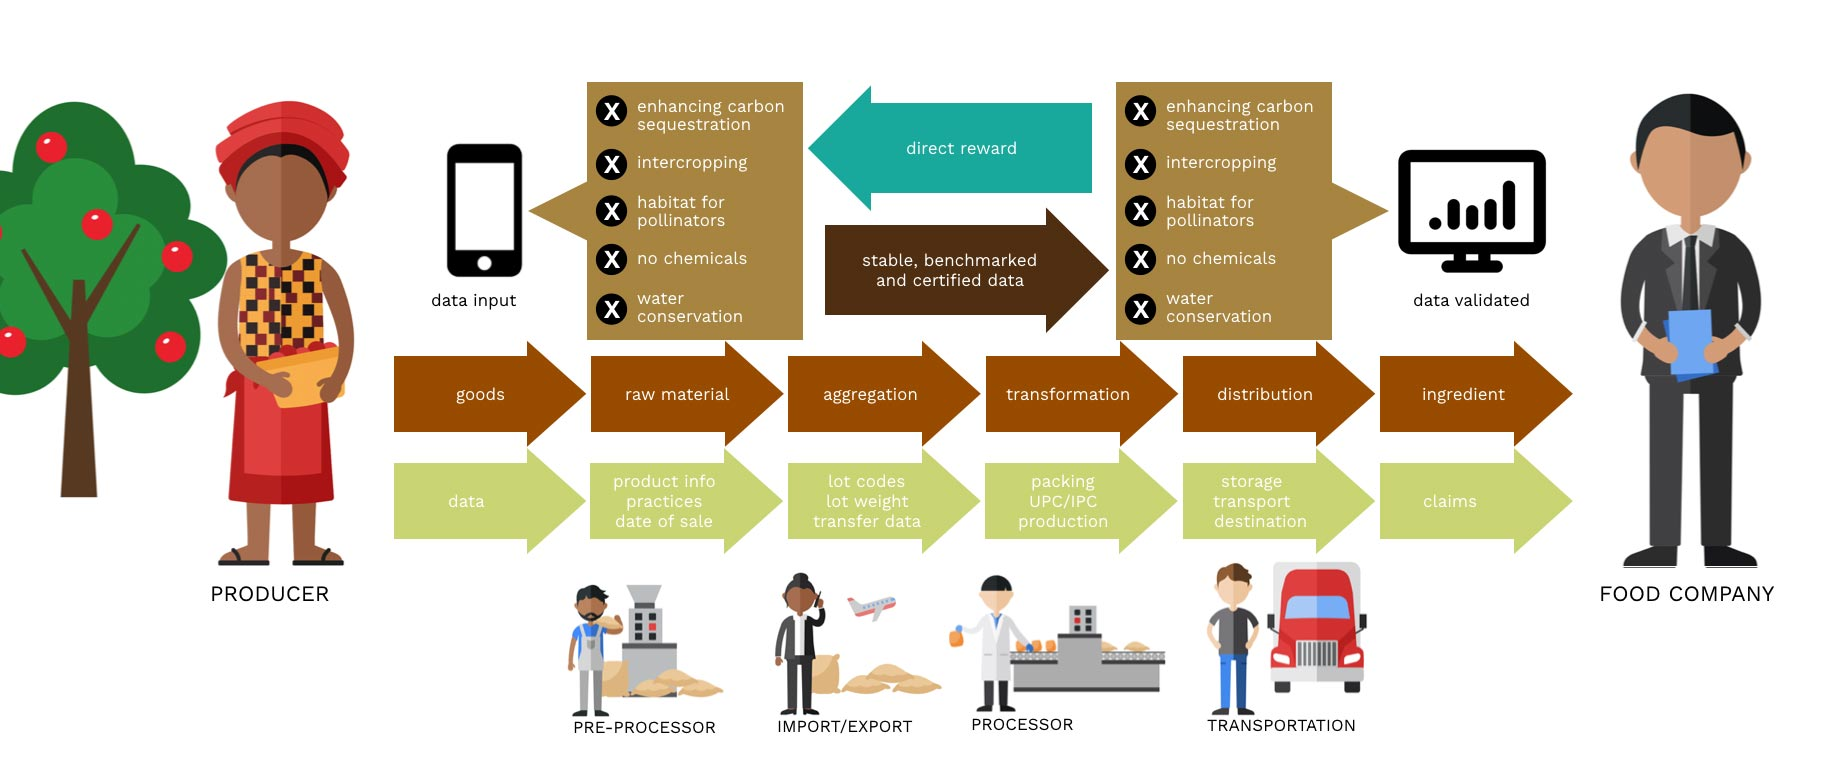 A Supply Chain Guide for Agrobiodiverstiy - GREEN BROWN BLUE